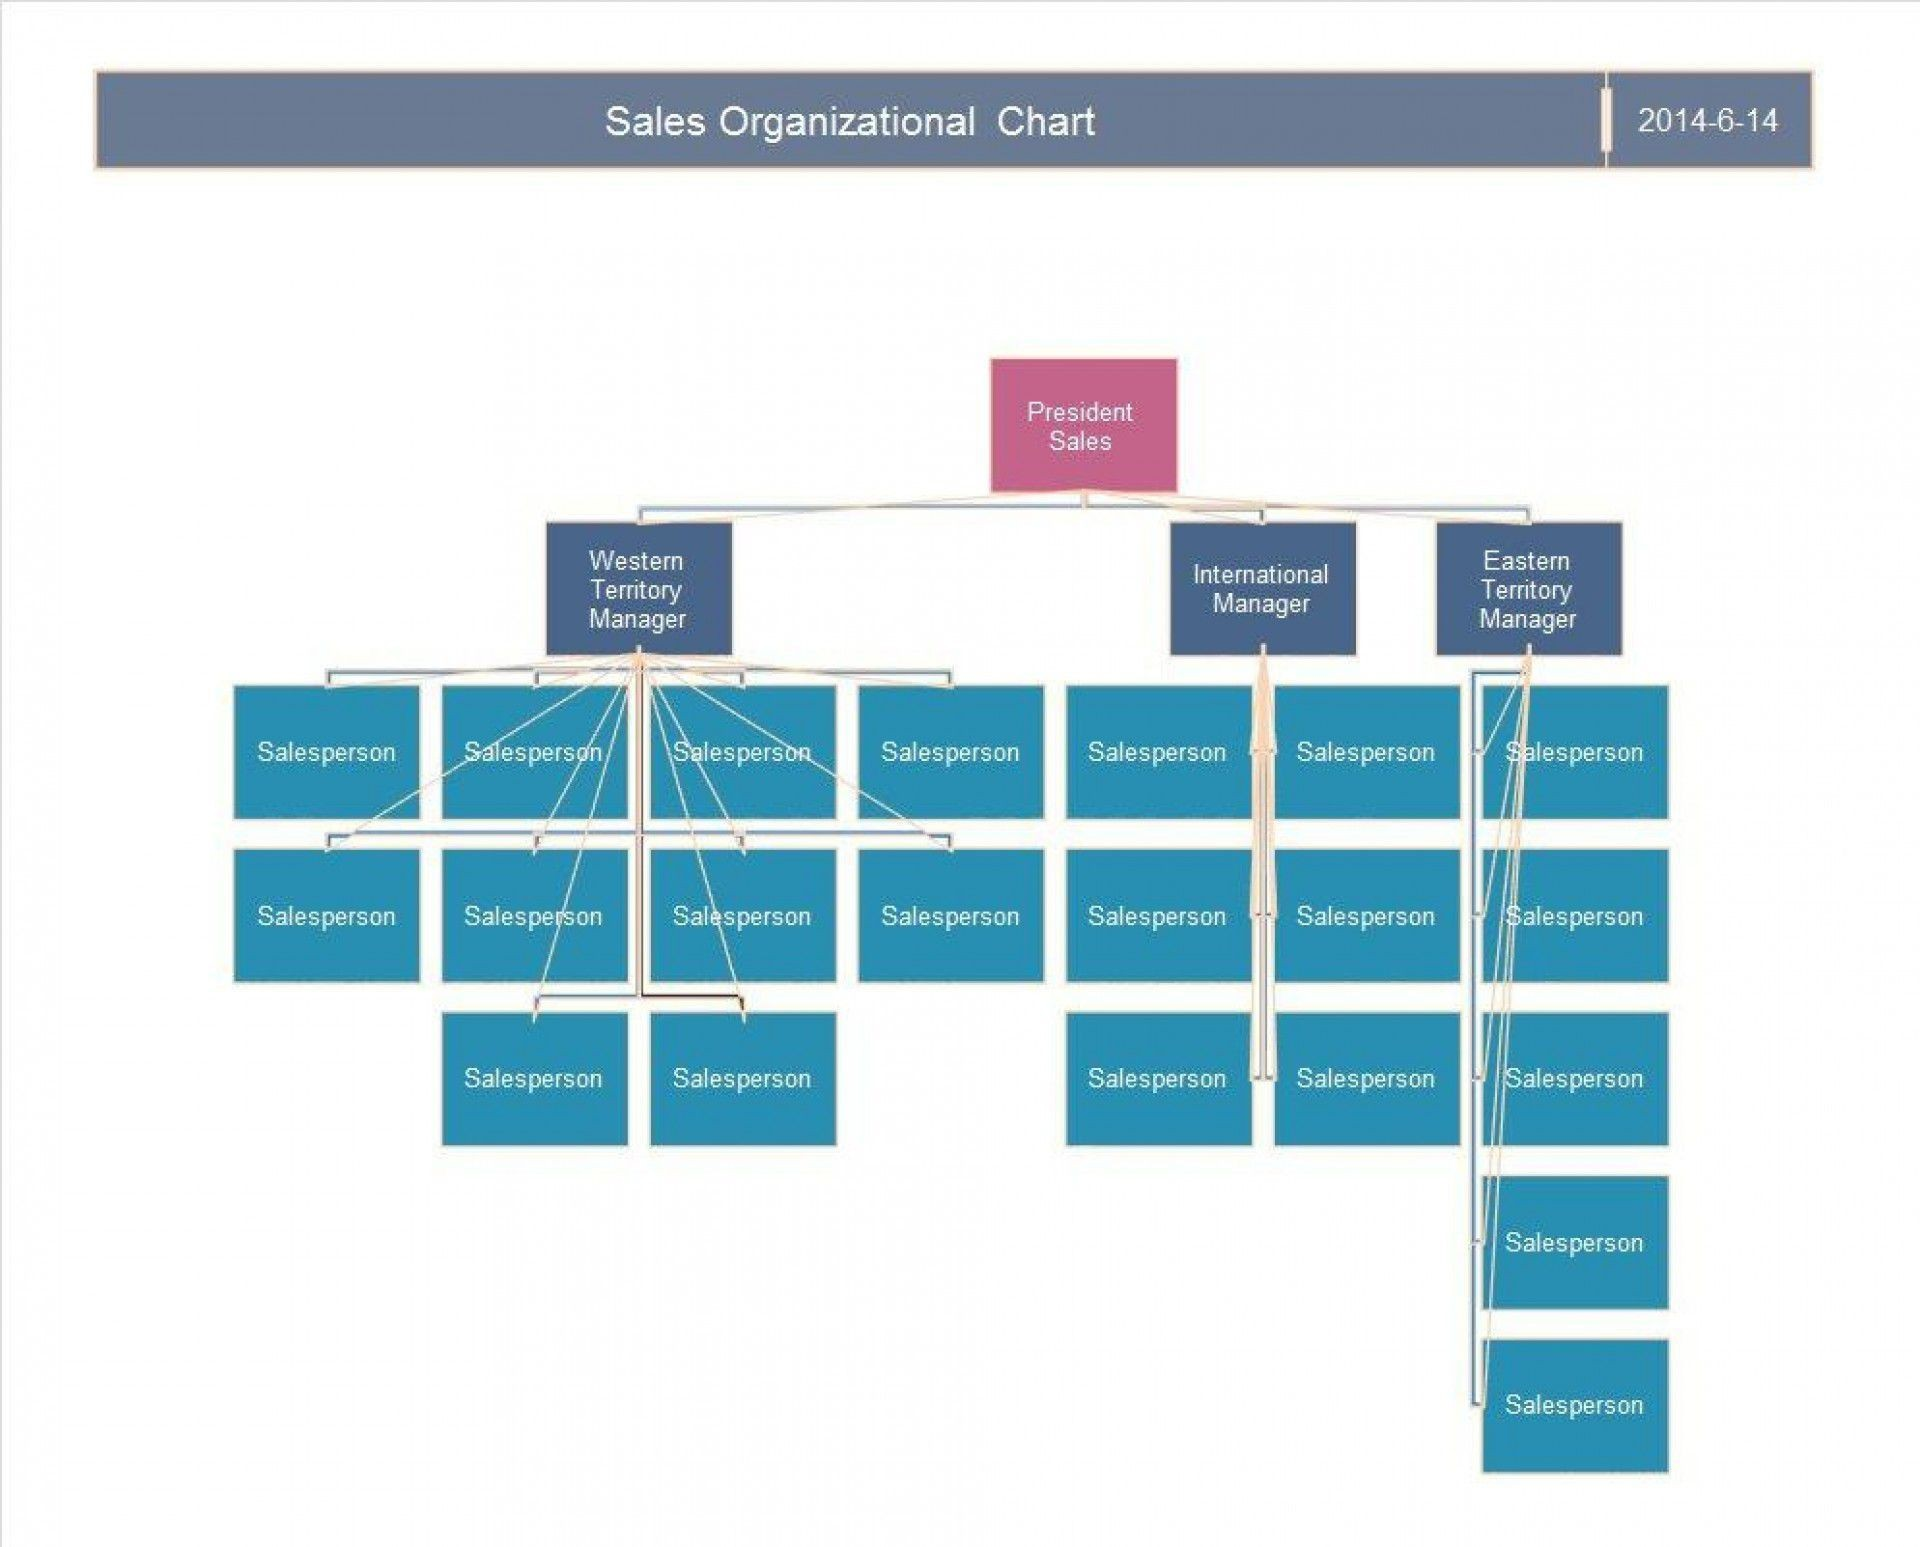 005 Striking Organization Chart Template Word 2013 Design  Organizational Free1920